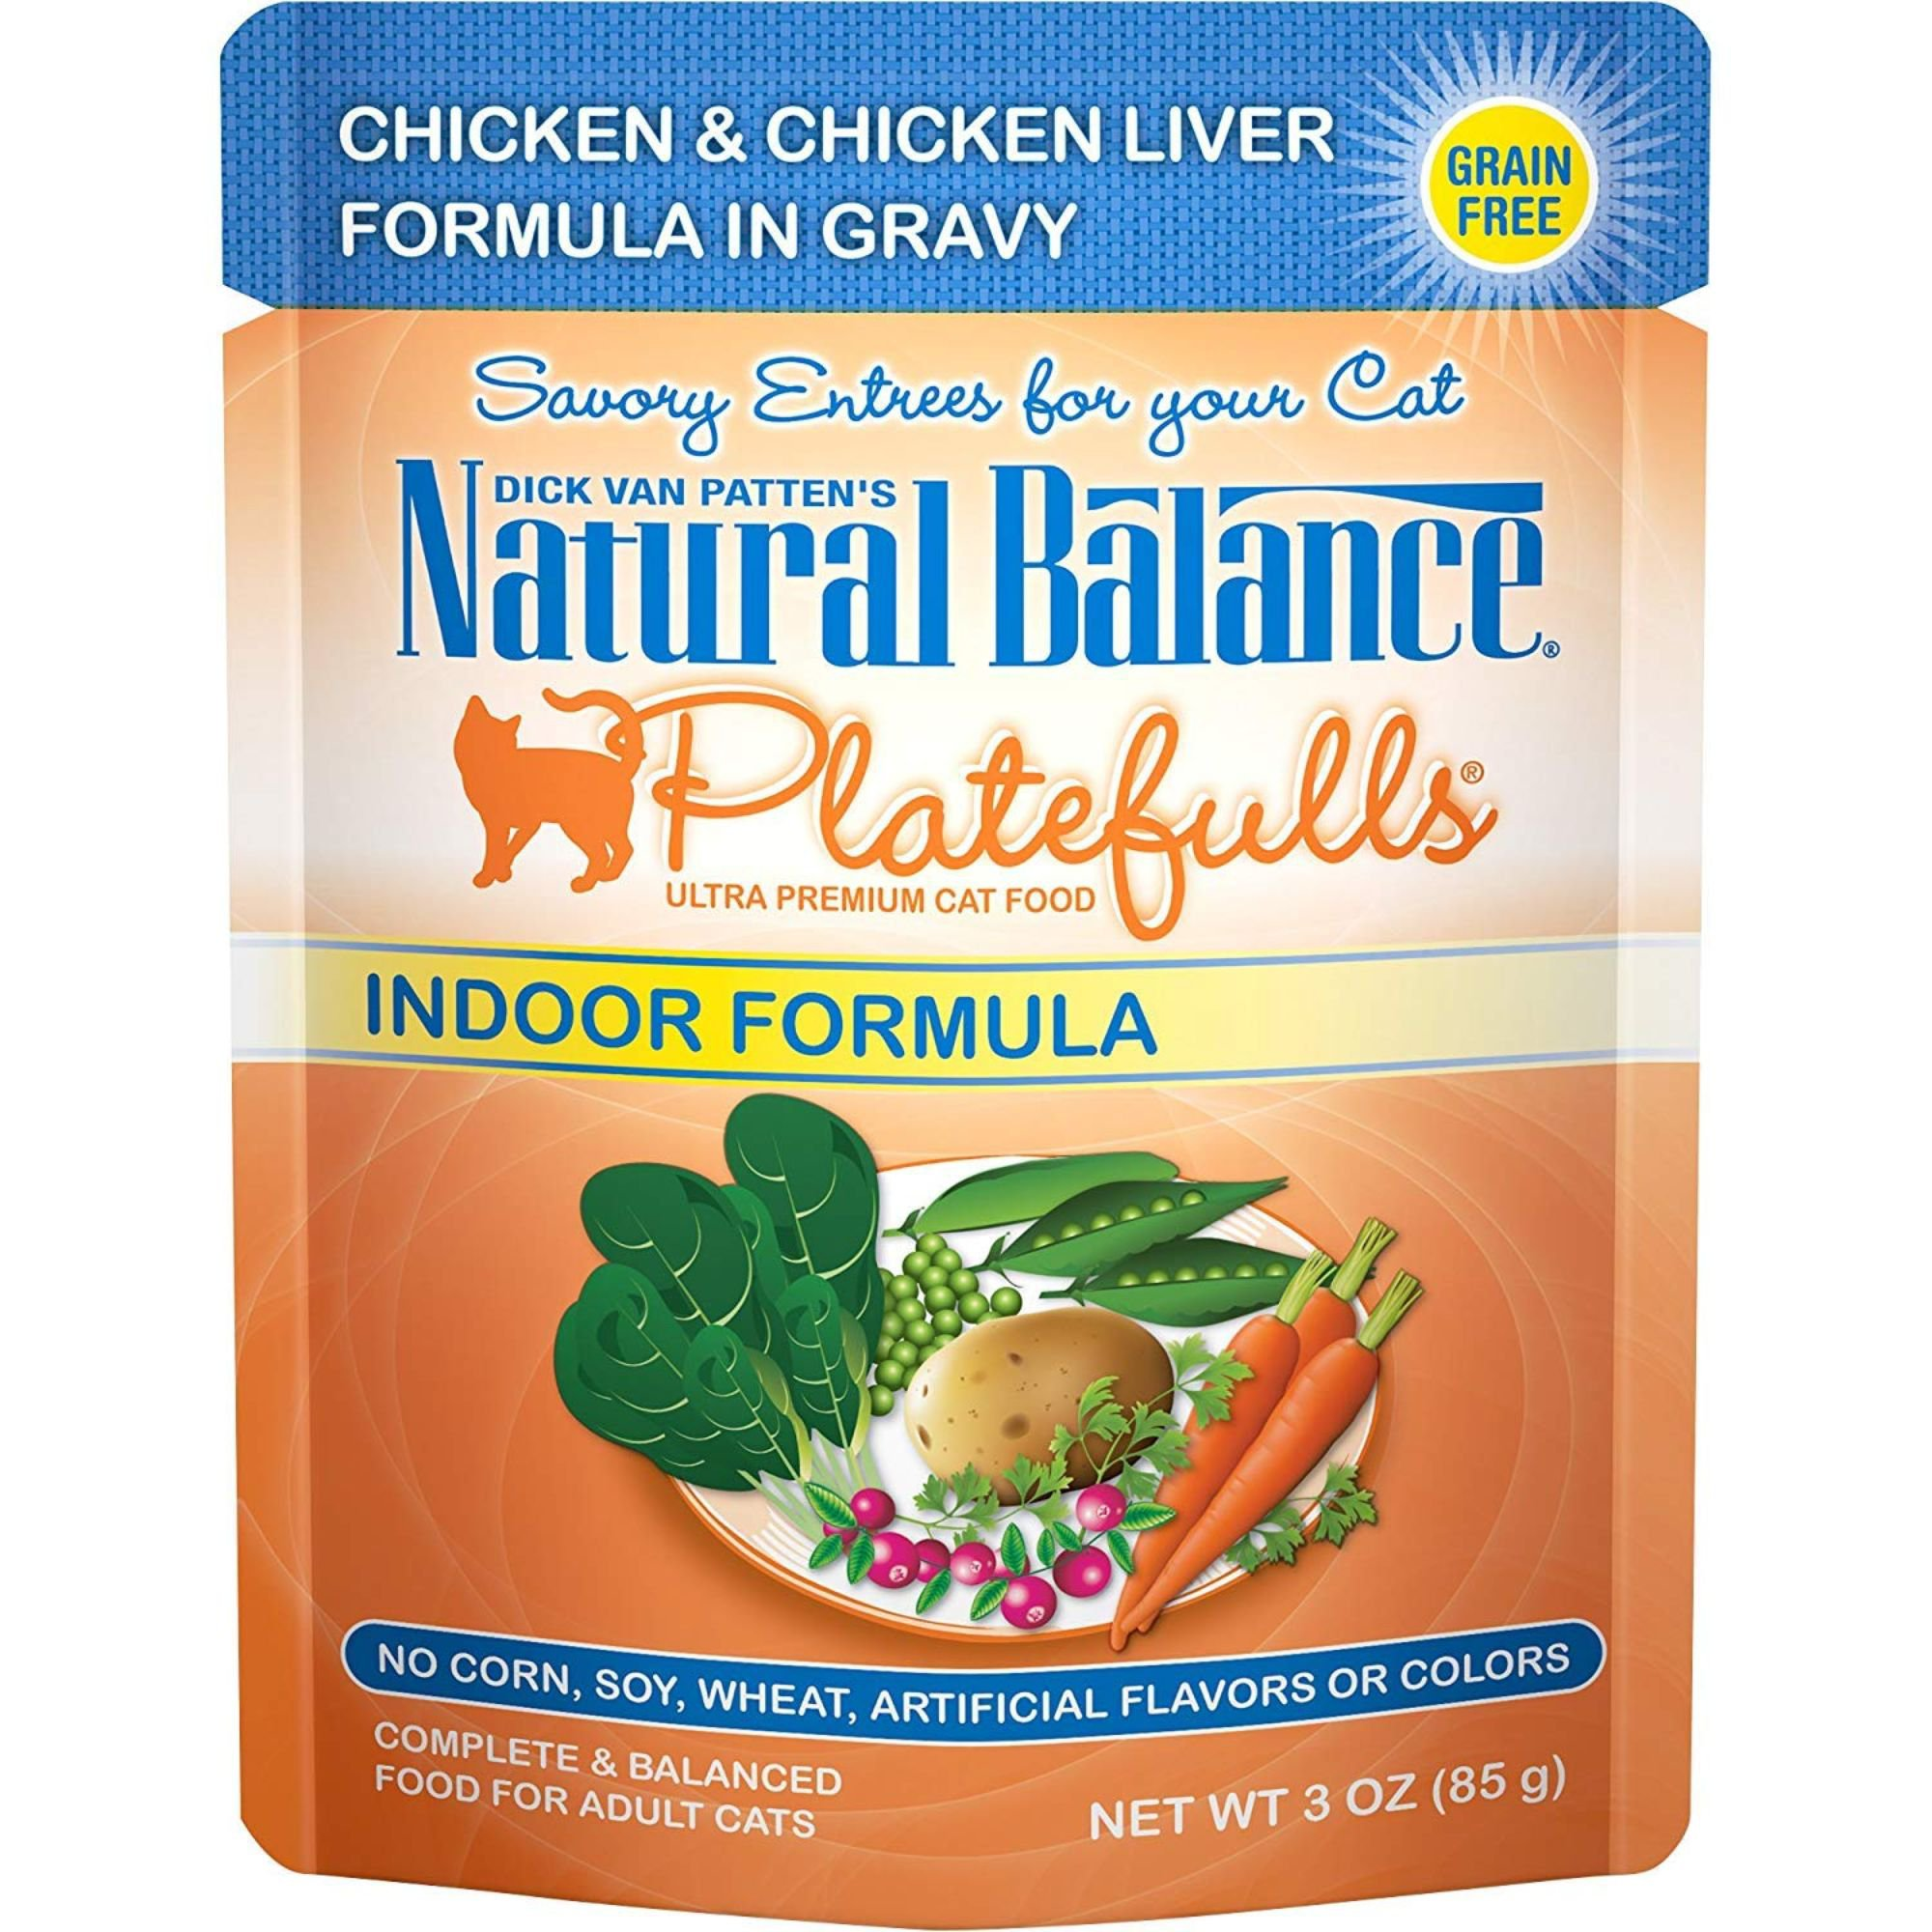 Natural Balance Platefulls Chicken & Chicken Liver Indoor Adult Cat Food